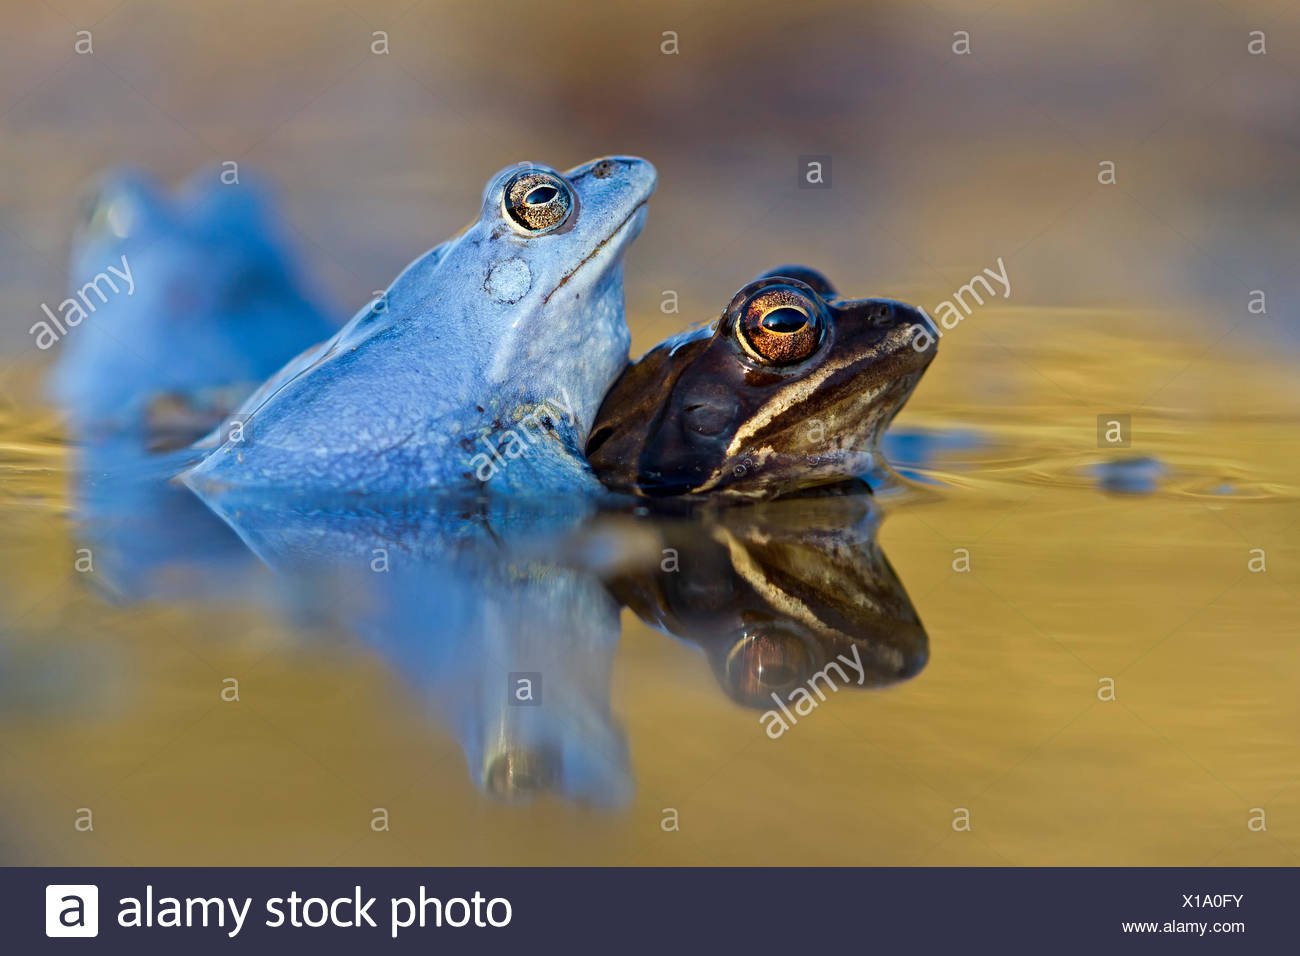 Moor Frogs (Rana arvalis), mating, Middle Elbe, Saxony-Anhalt, Germany - Stock Image